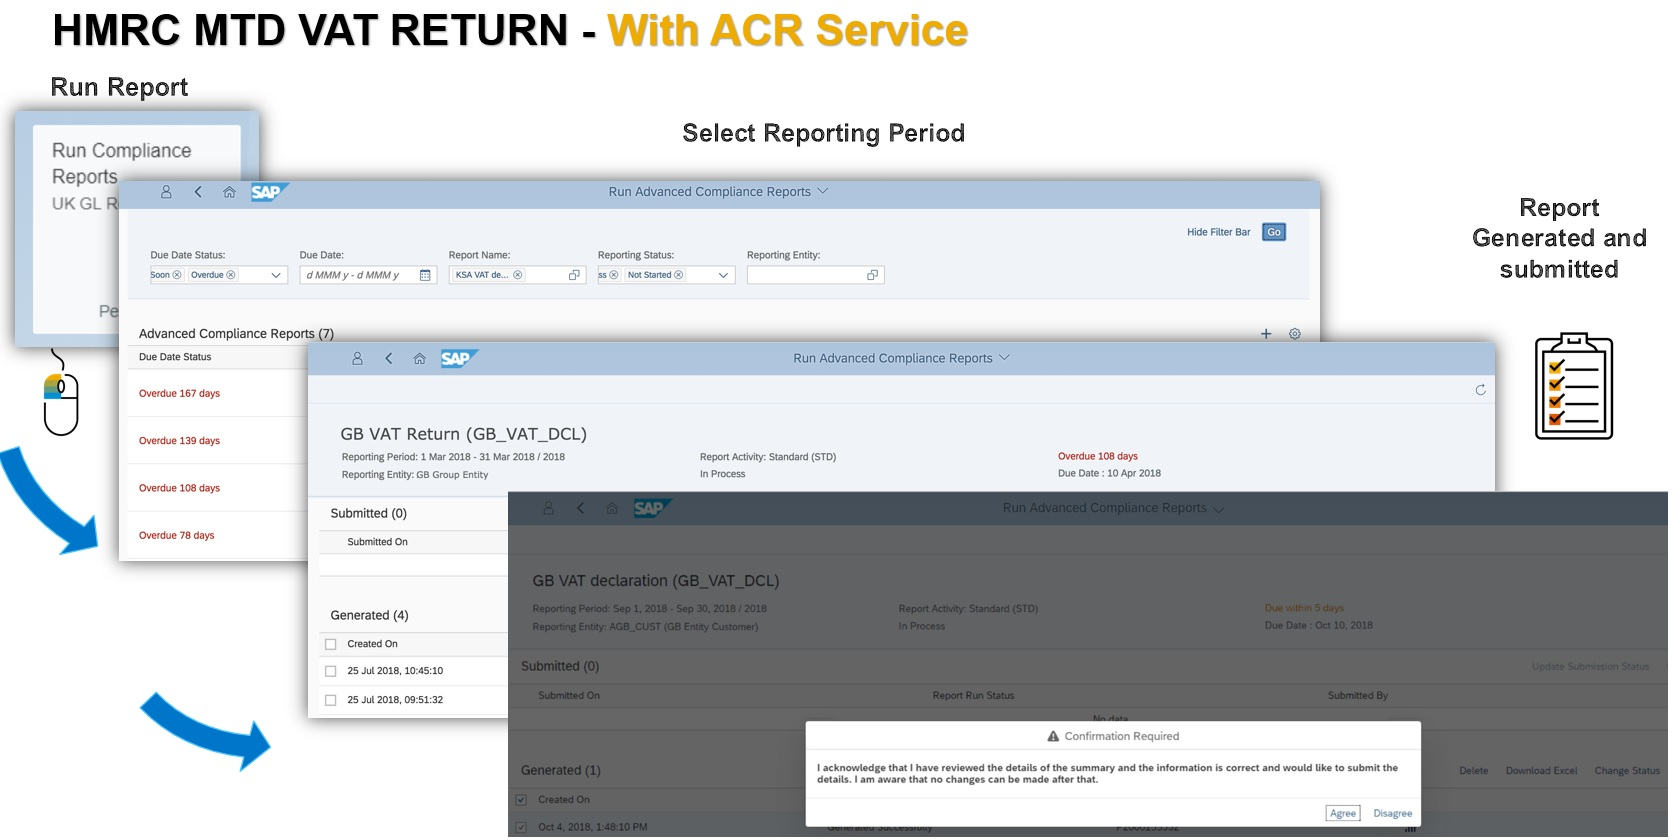 Api Enabled Spreadsheet For Mtd For Making Tax Digital With Sap – Uk Hmrc's Initiative  Sap Blogs